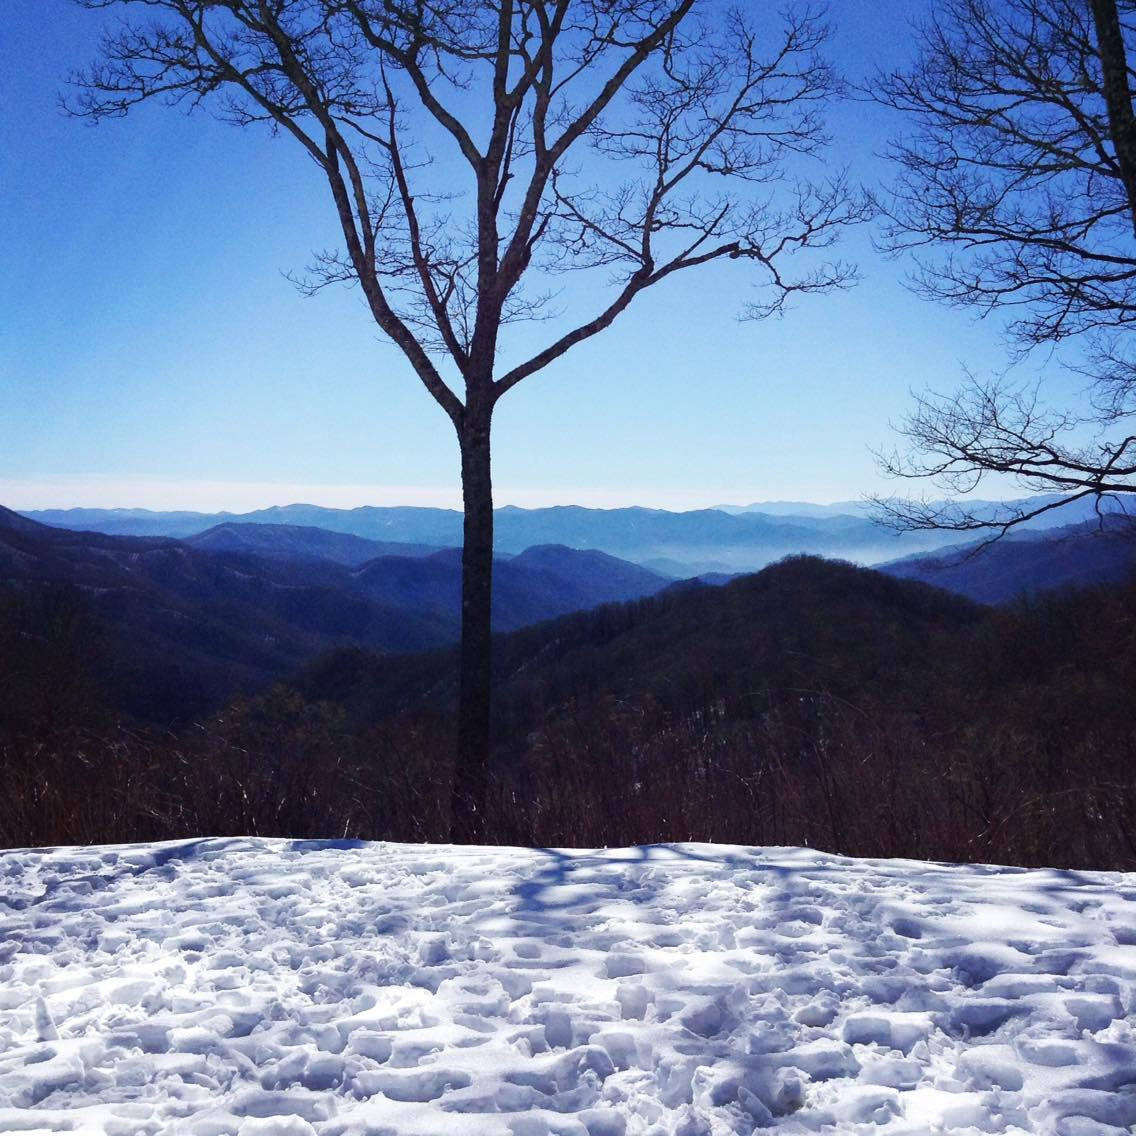 The Great Smoky/Snowy Mountains of Tennessee